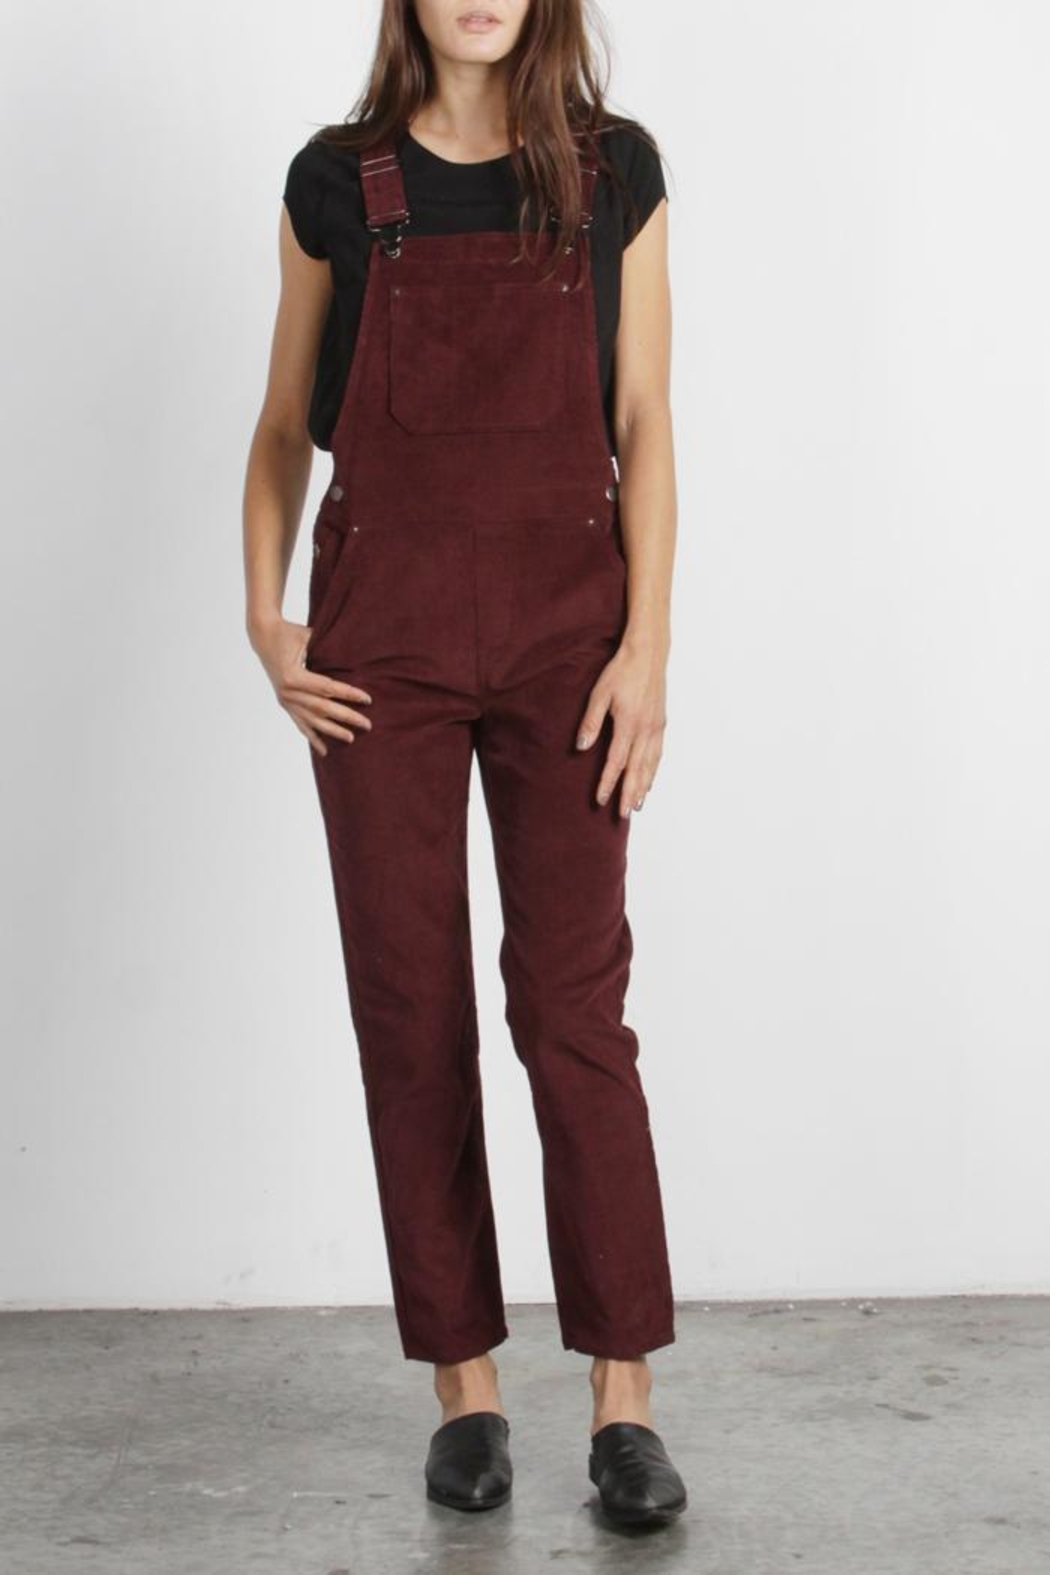 Mod Ref Burgundy Corduroy Overalls - Front Cropped Image